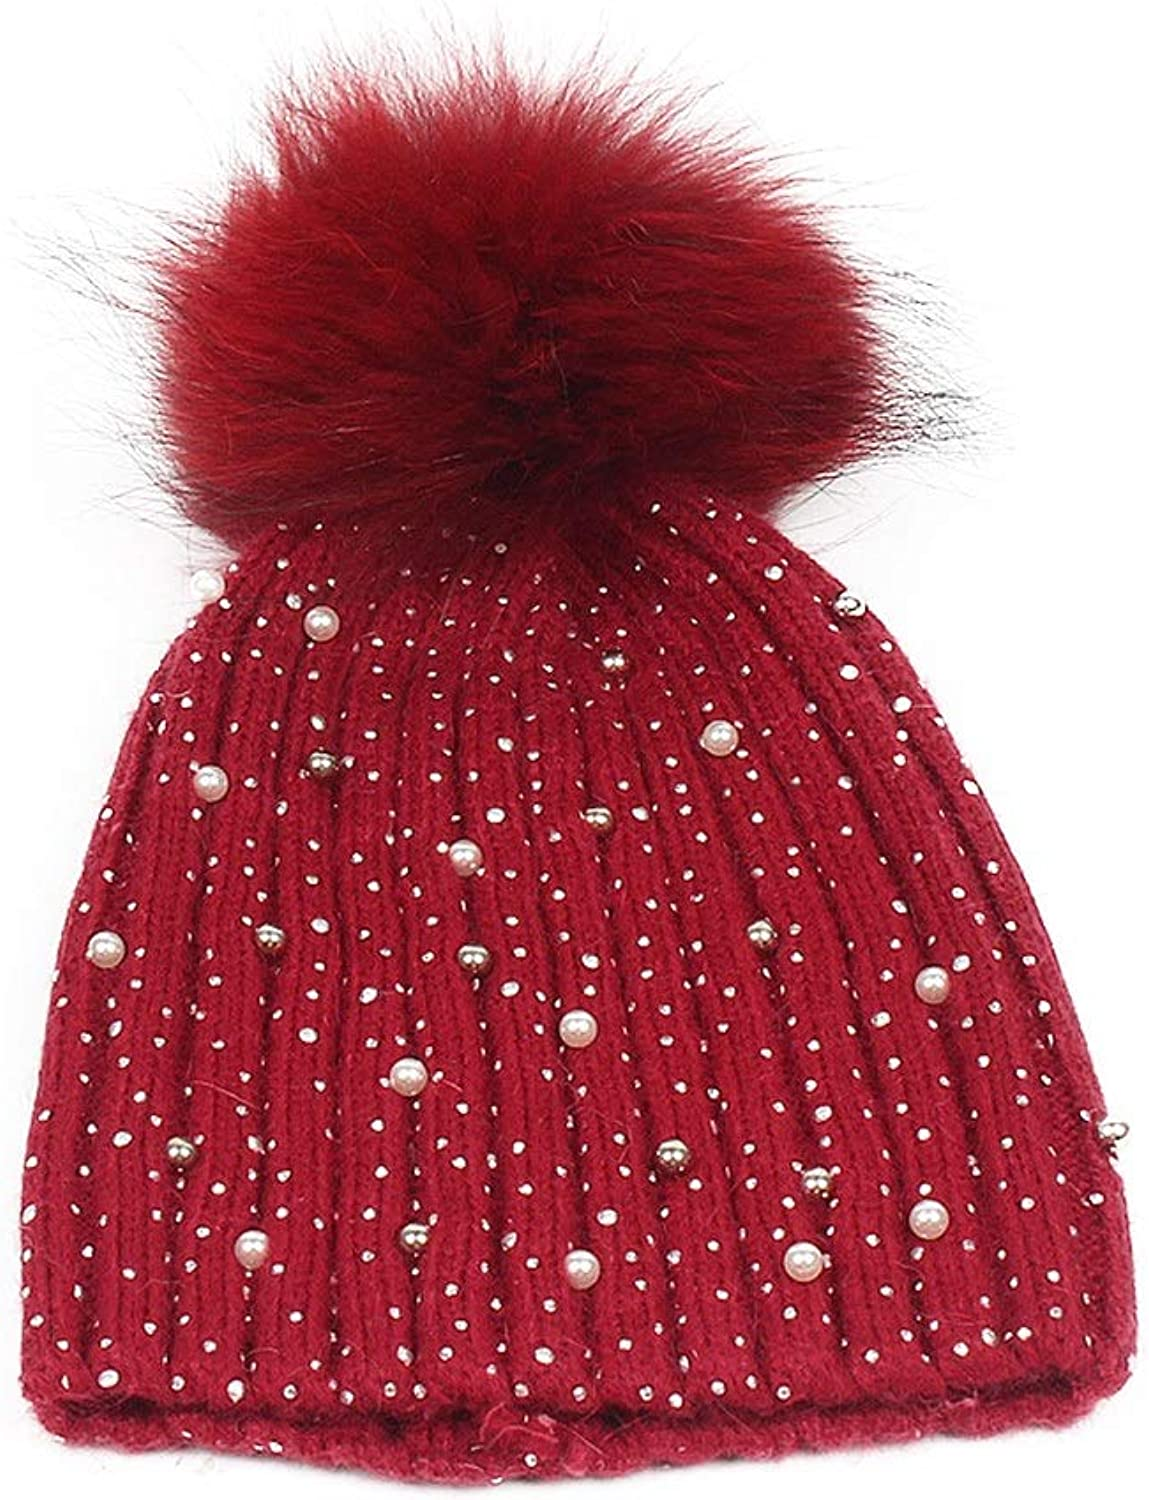 Women's Autumn Winter Soft Thickened Warm Knitted Cap Soft Pompom Hat. (color   Red)